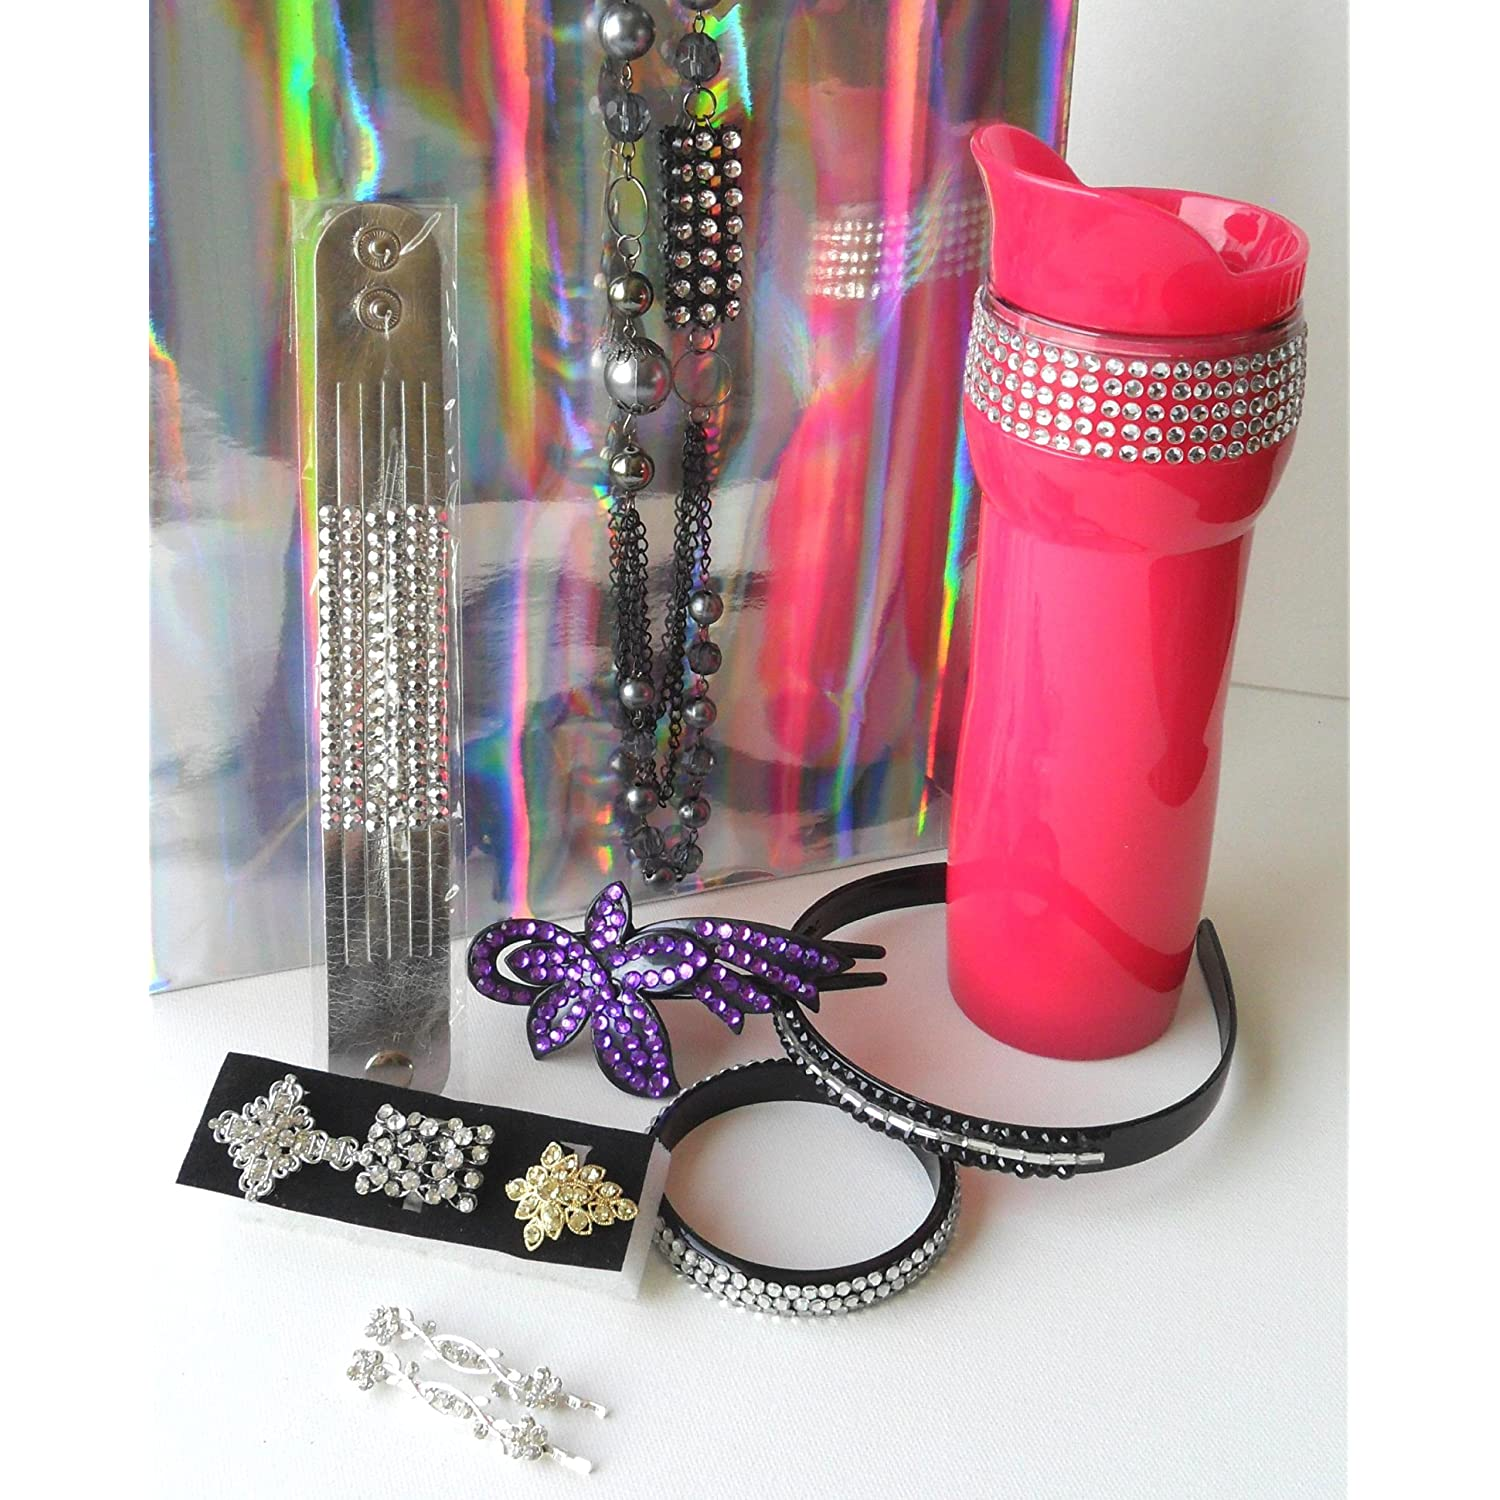 Rhinestone Bling Bling Gift Set with 11 Pieces